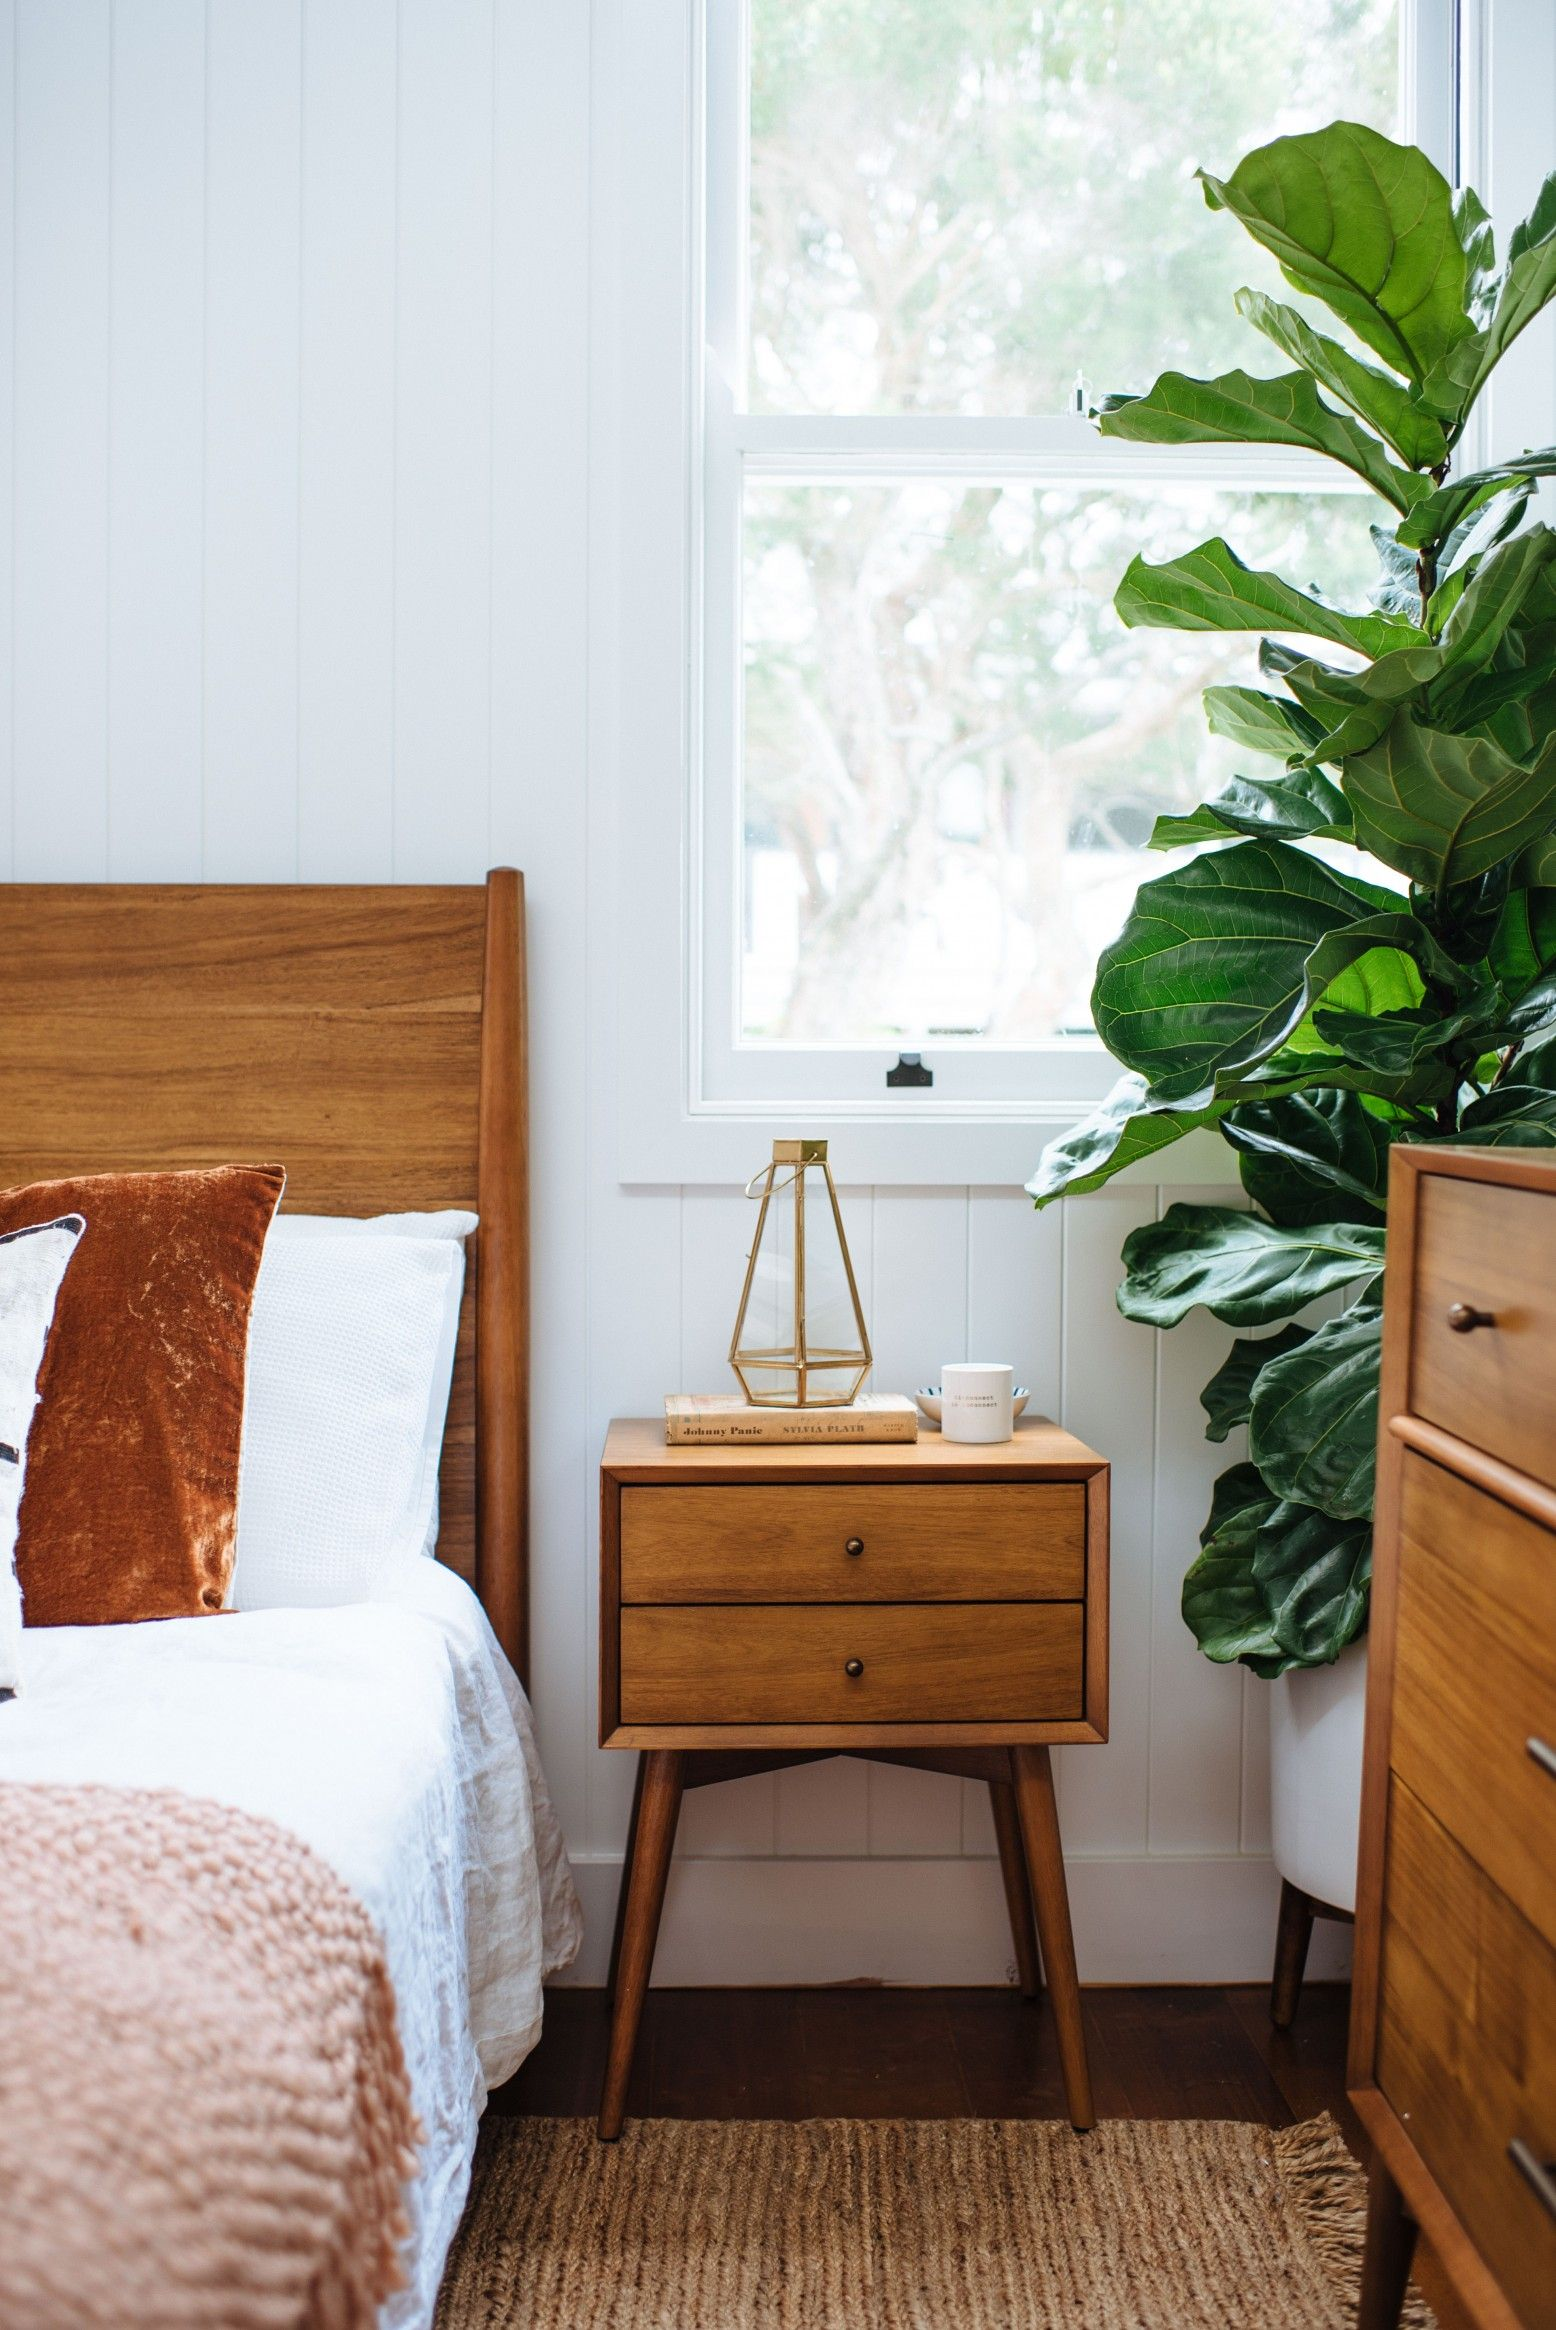 Modern renovation in a small bedroom: photo 2018